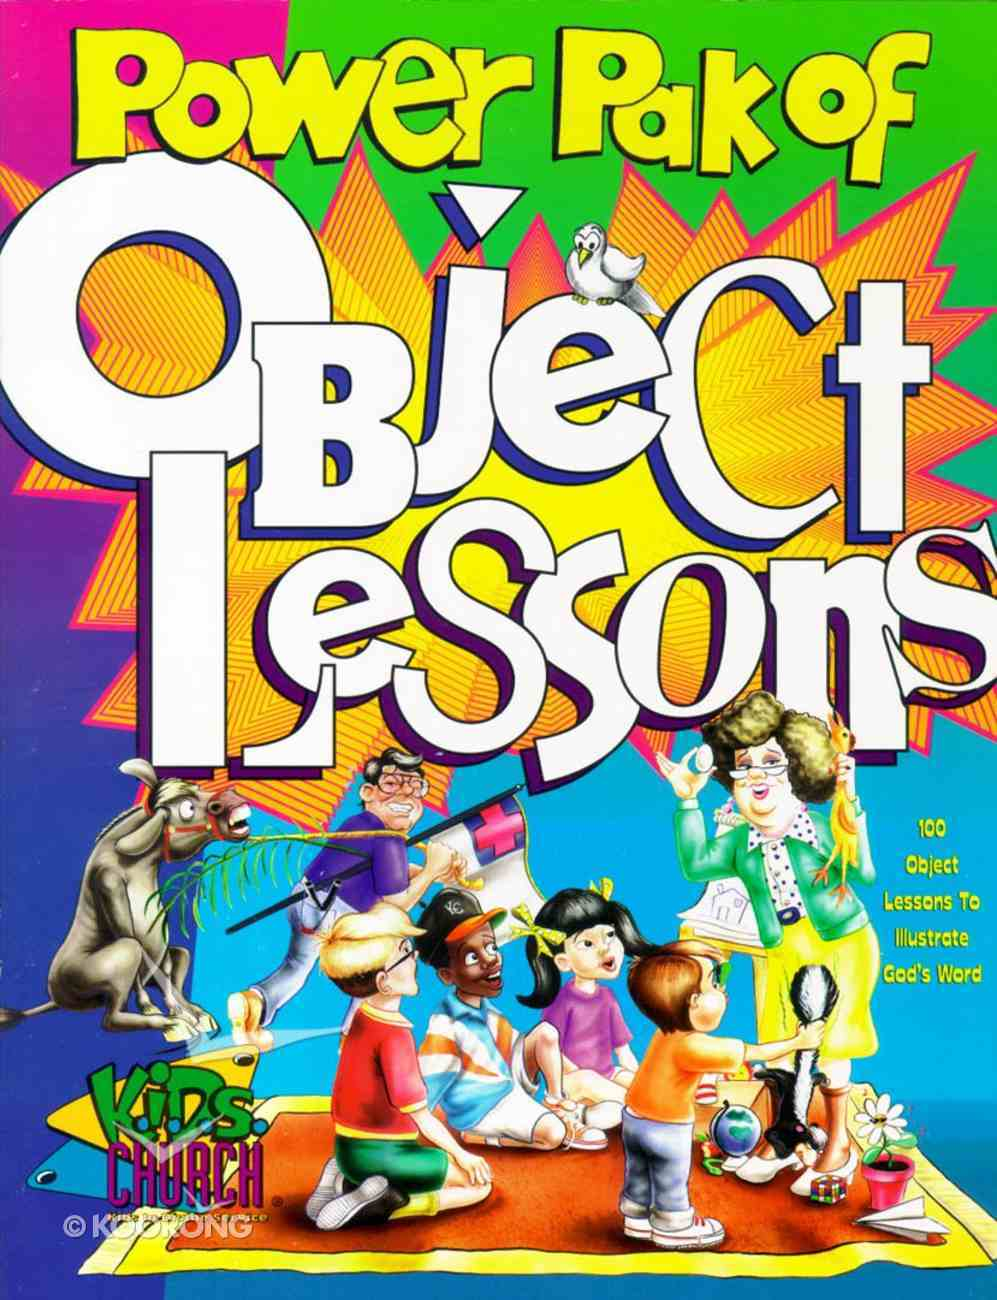 Power Pak of Object Lessons Paperback